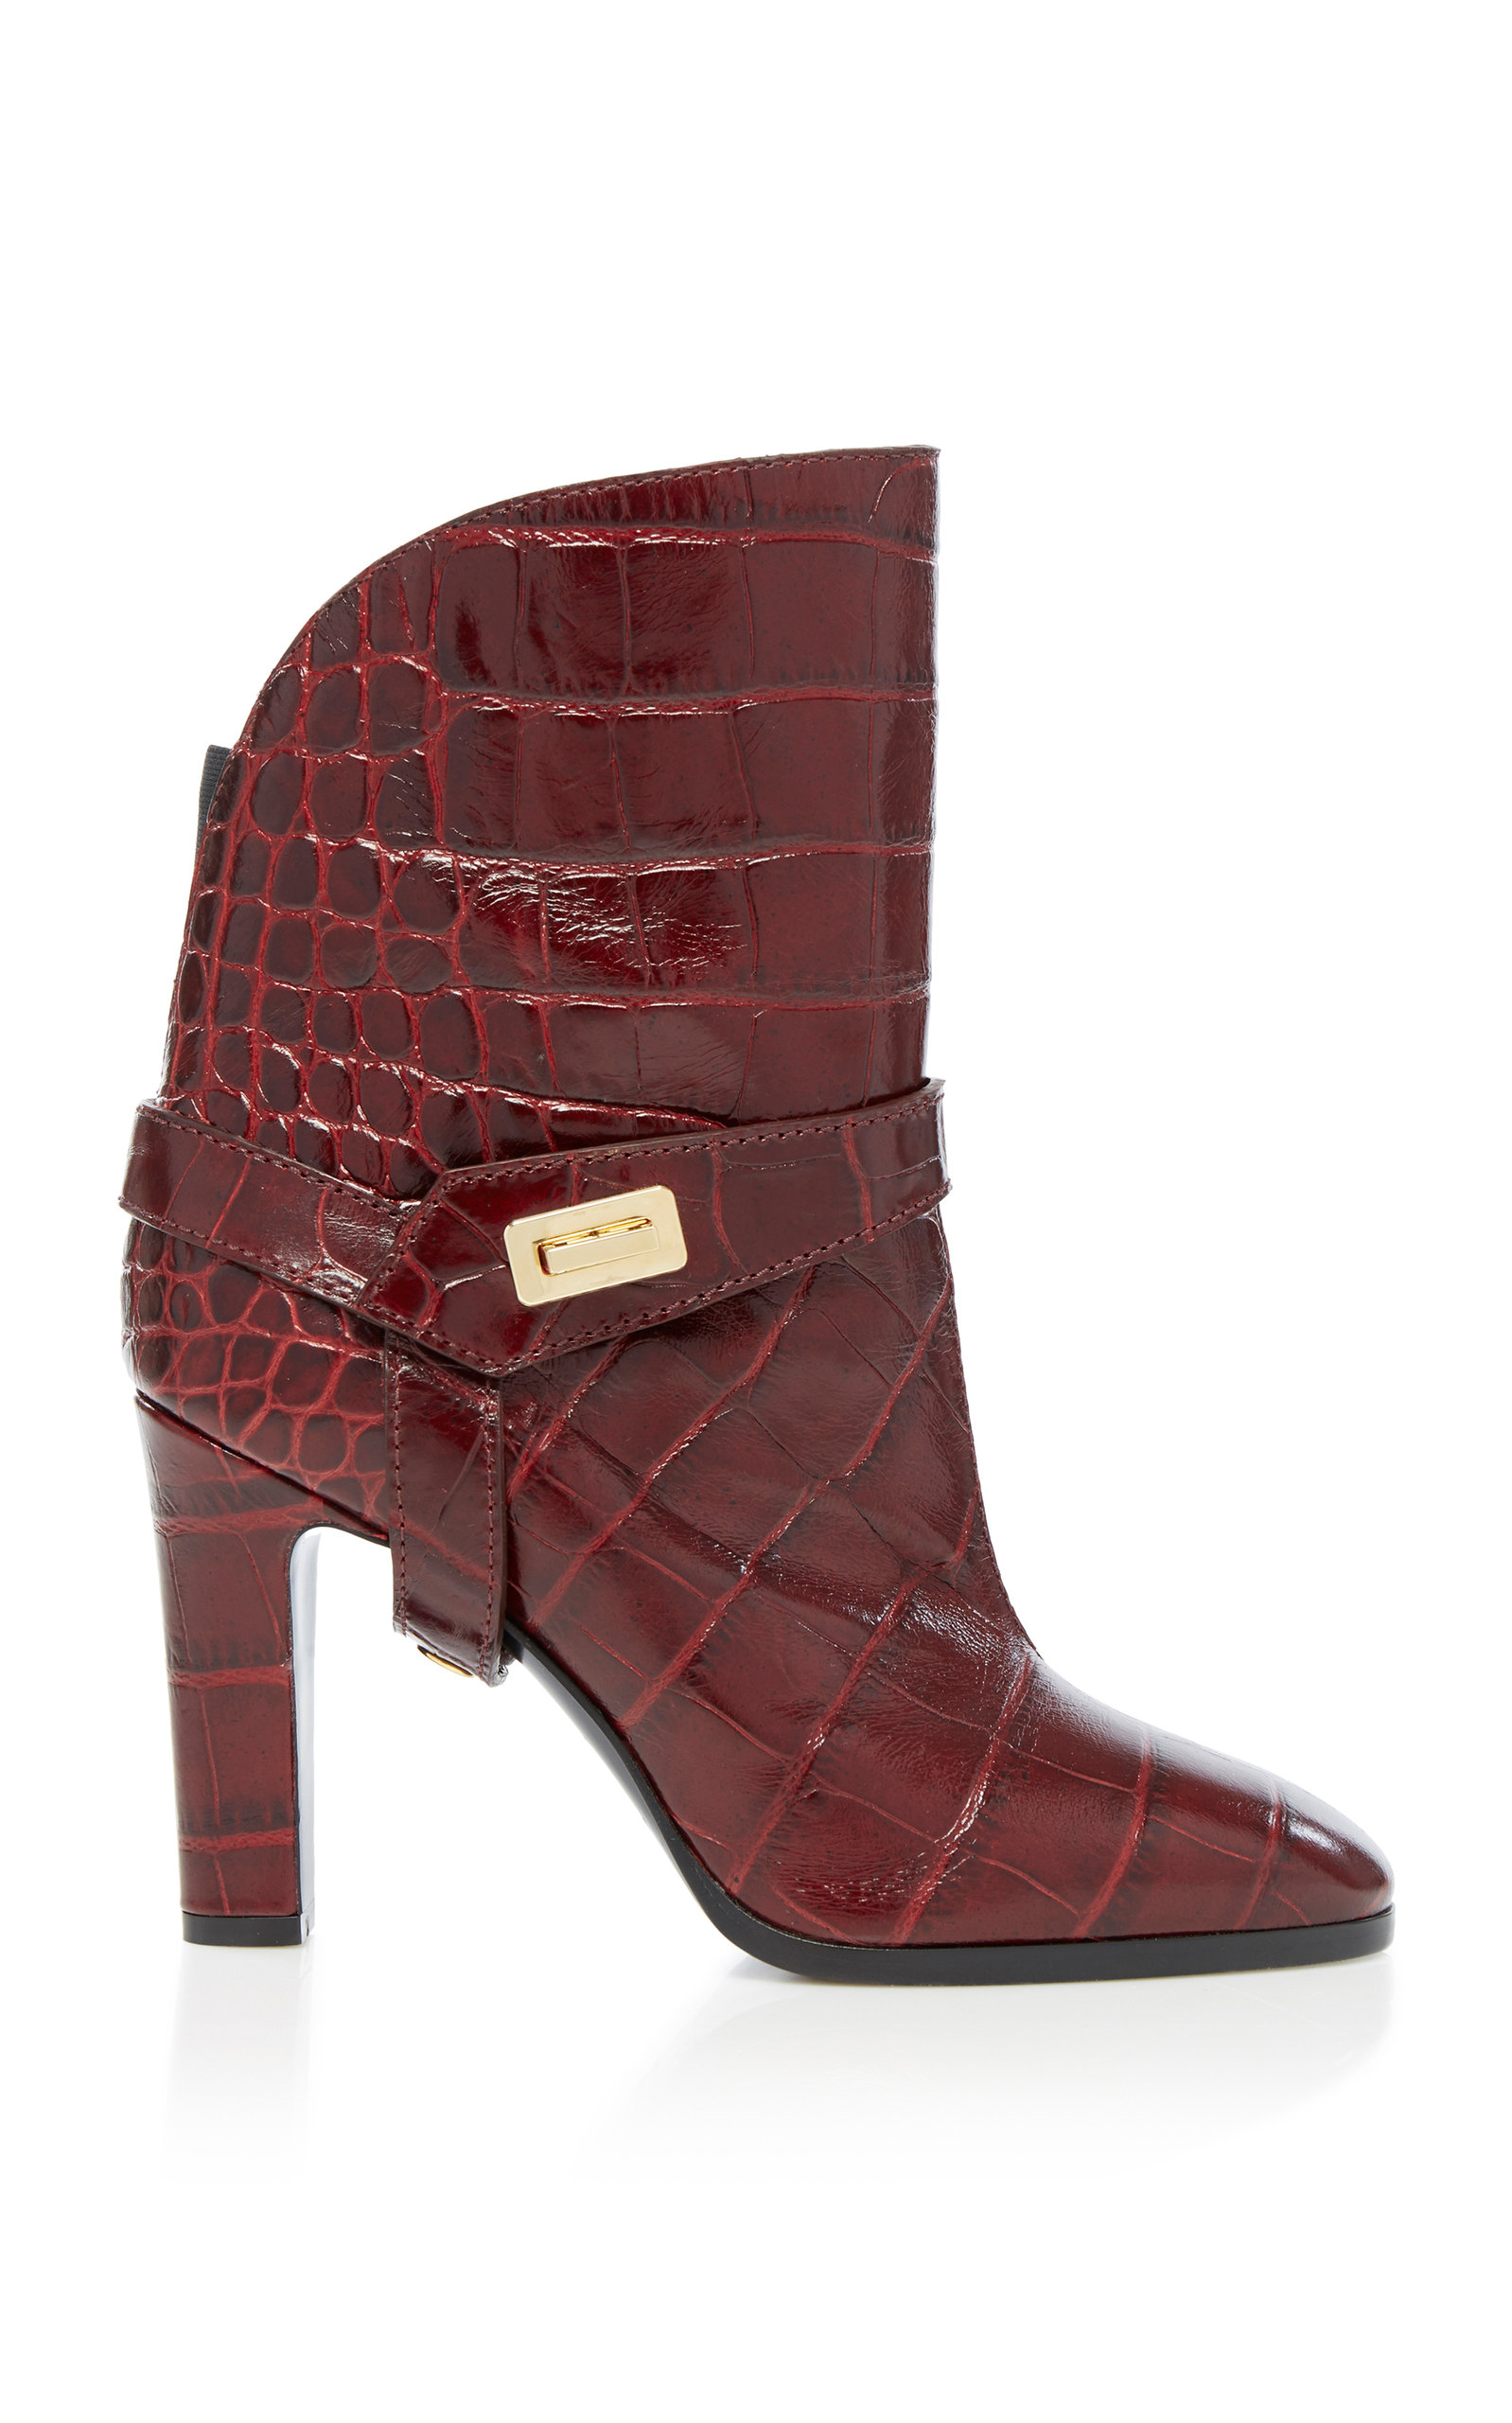 Givenchy Boots Eden Croc-Effect Leather Boots